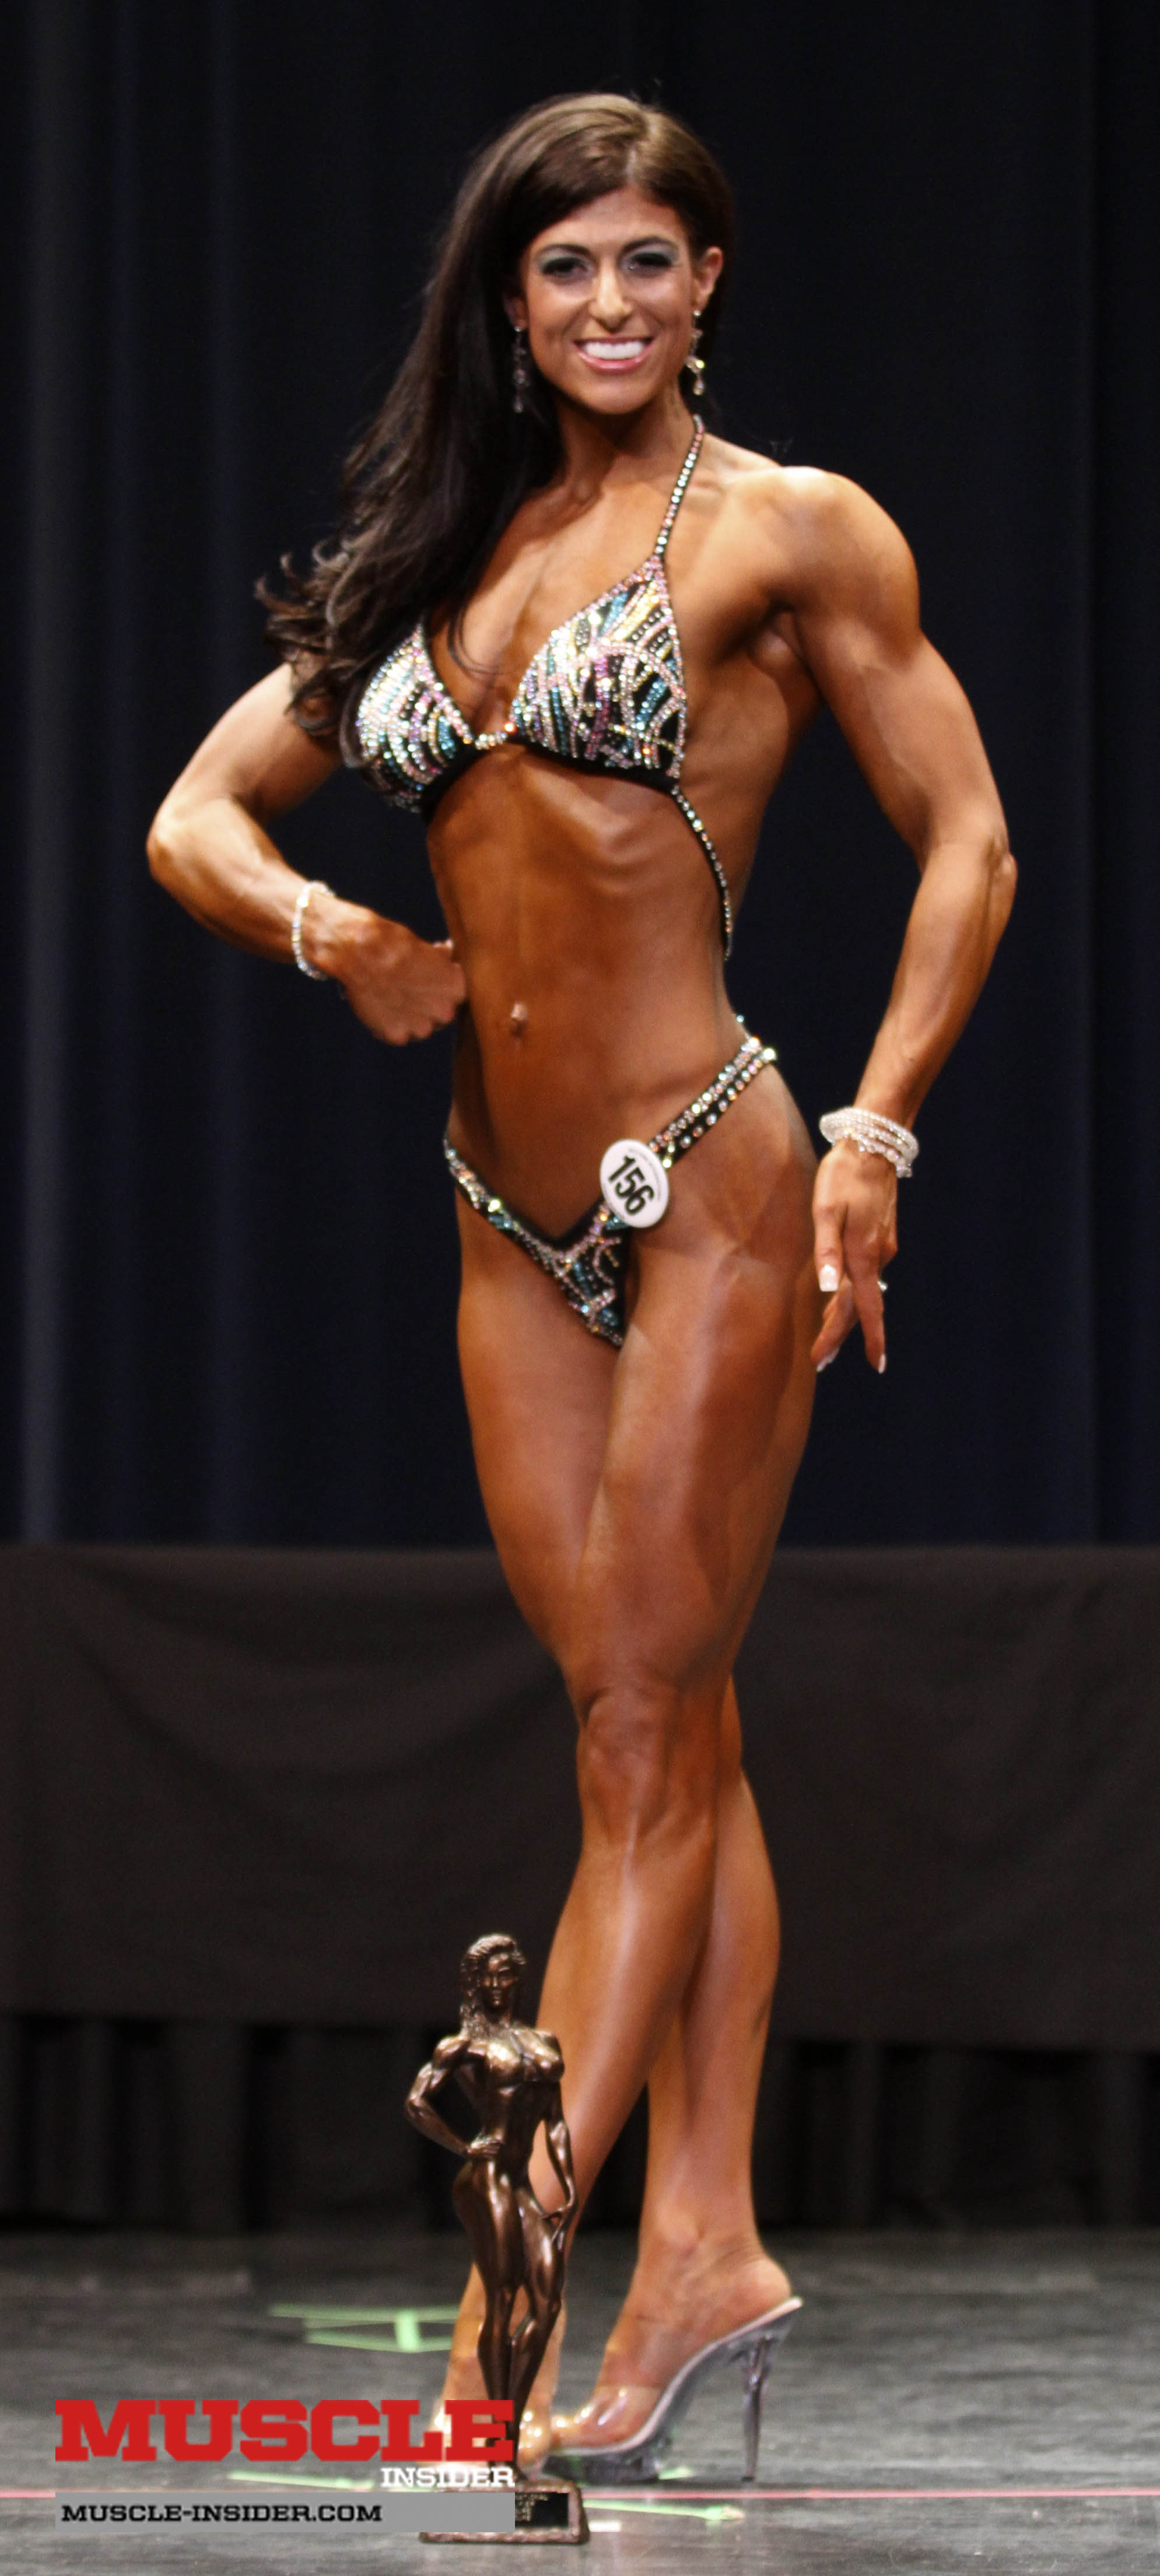 Amateur womens fitness figure competitions